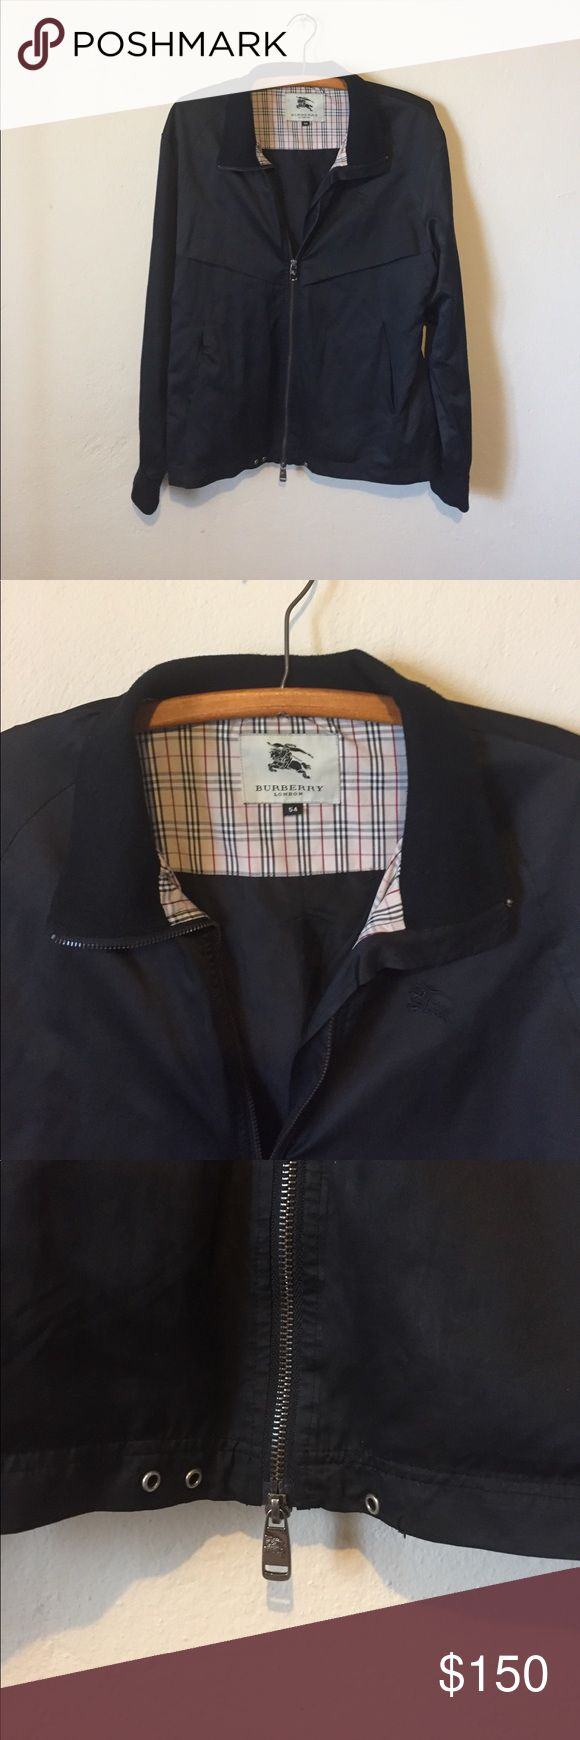 Men's Burberry bomber jacket Excellent condition. Men's size 54 (U.S size 44 L/XL)nylon bomber jacket. Minor flaw at bottom, missing small silver ring(shown) and elastic string that threads through(easily replaceable) Burberry Jackets & Coats Bomber & Varsity